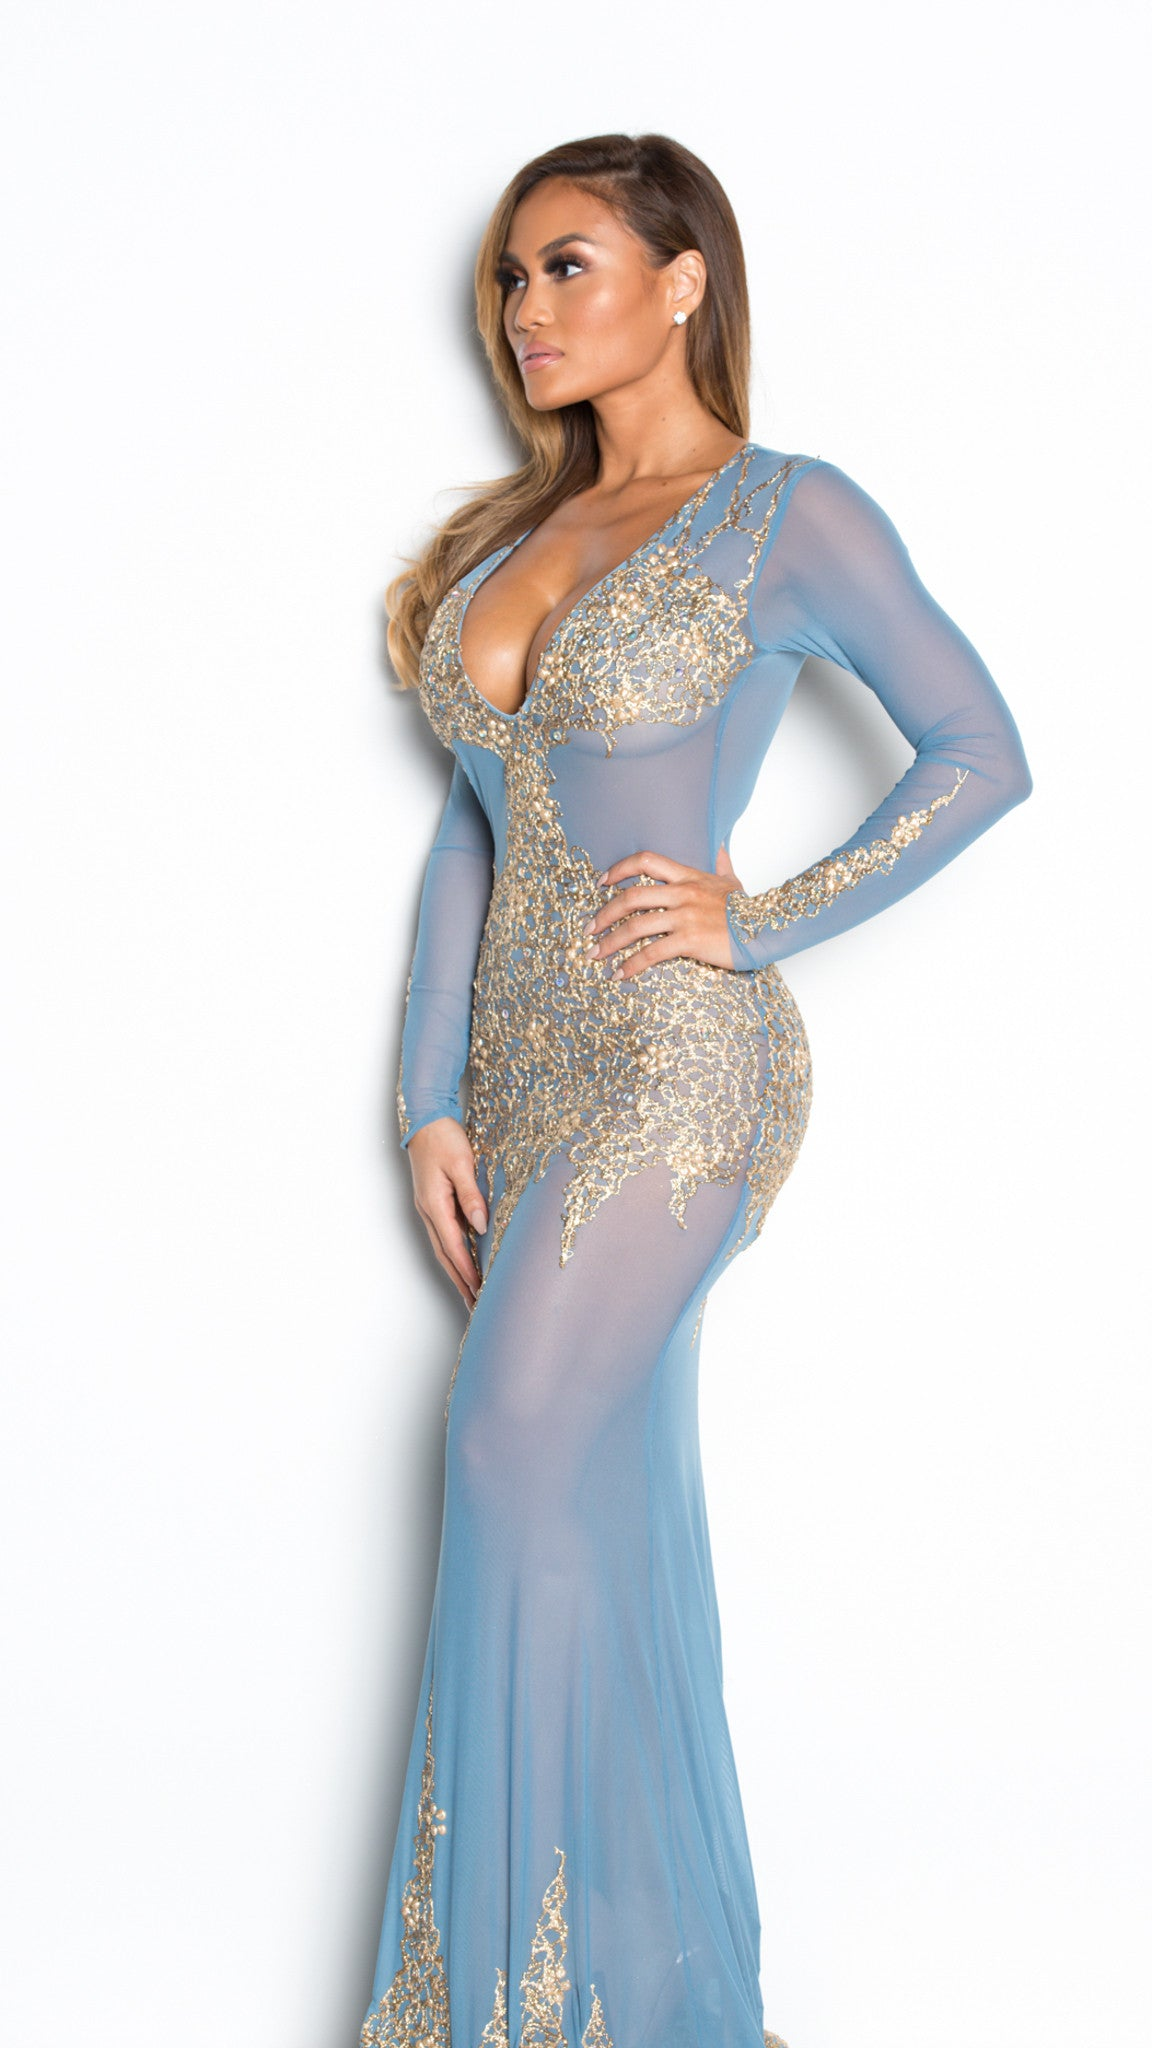 BEYONCE GOWN IN BLUE JEAN WITH GOLD - HOLT